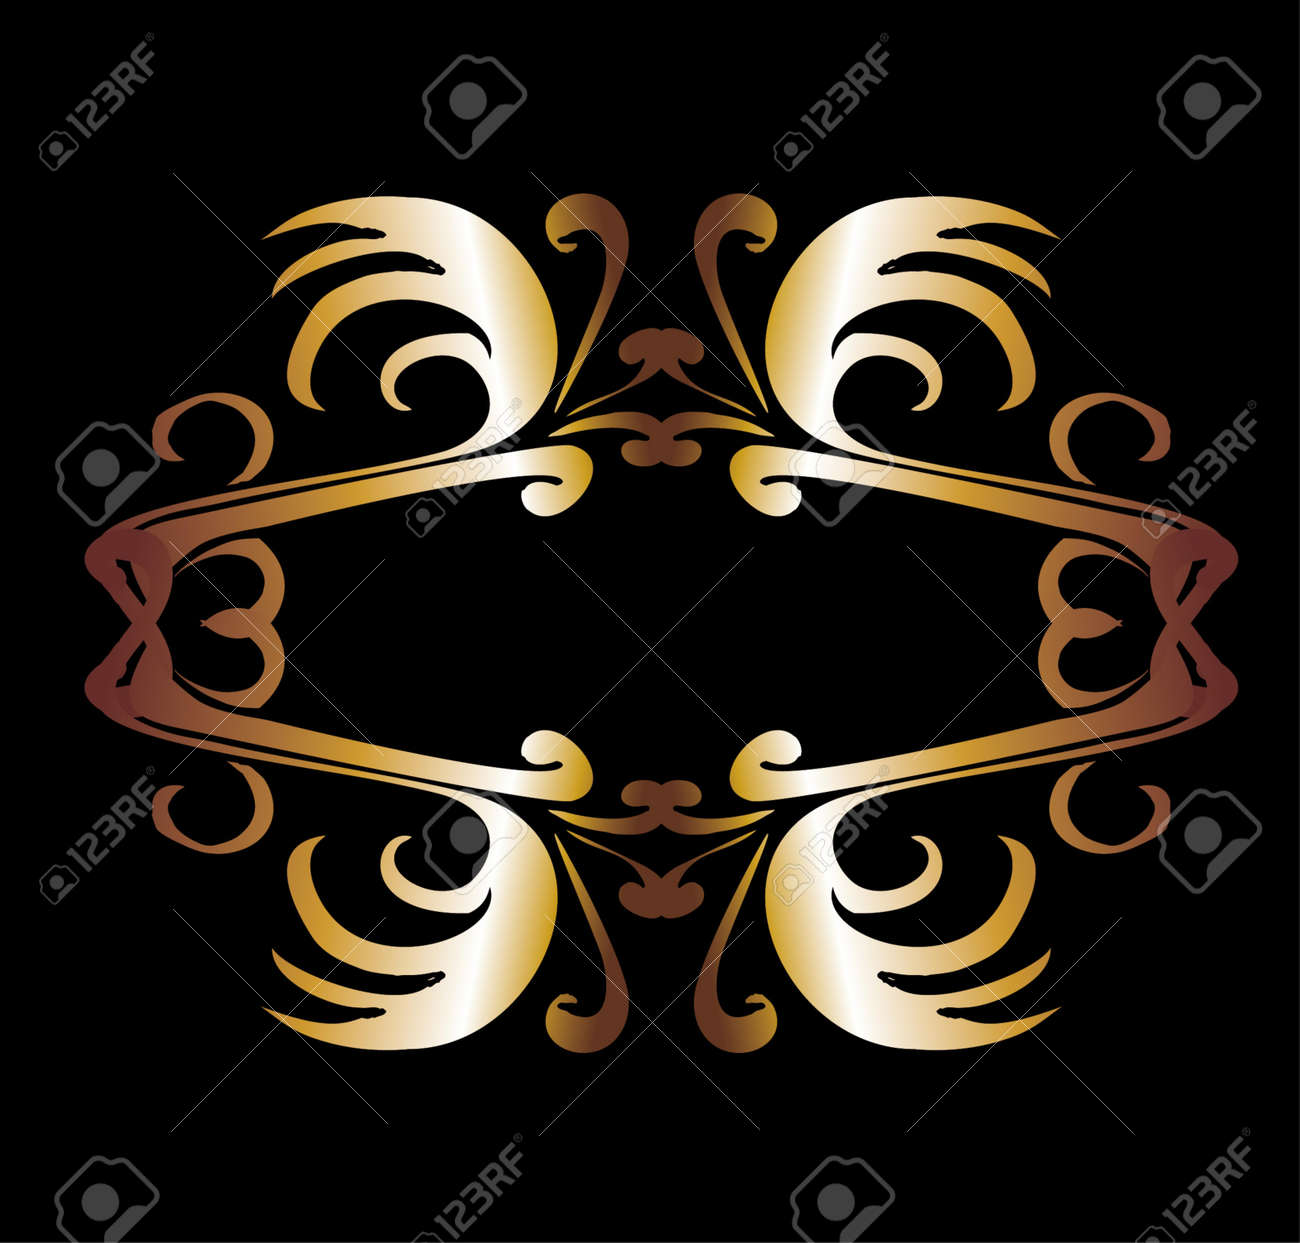 metalic gold wings and shield vector art Stock Vector - 19648684